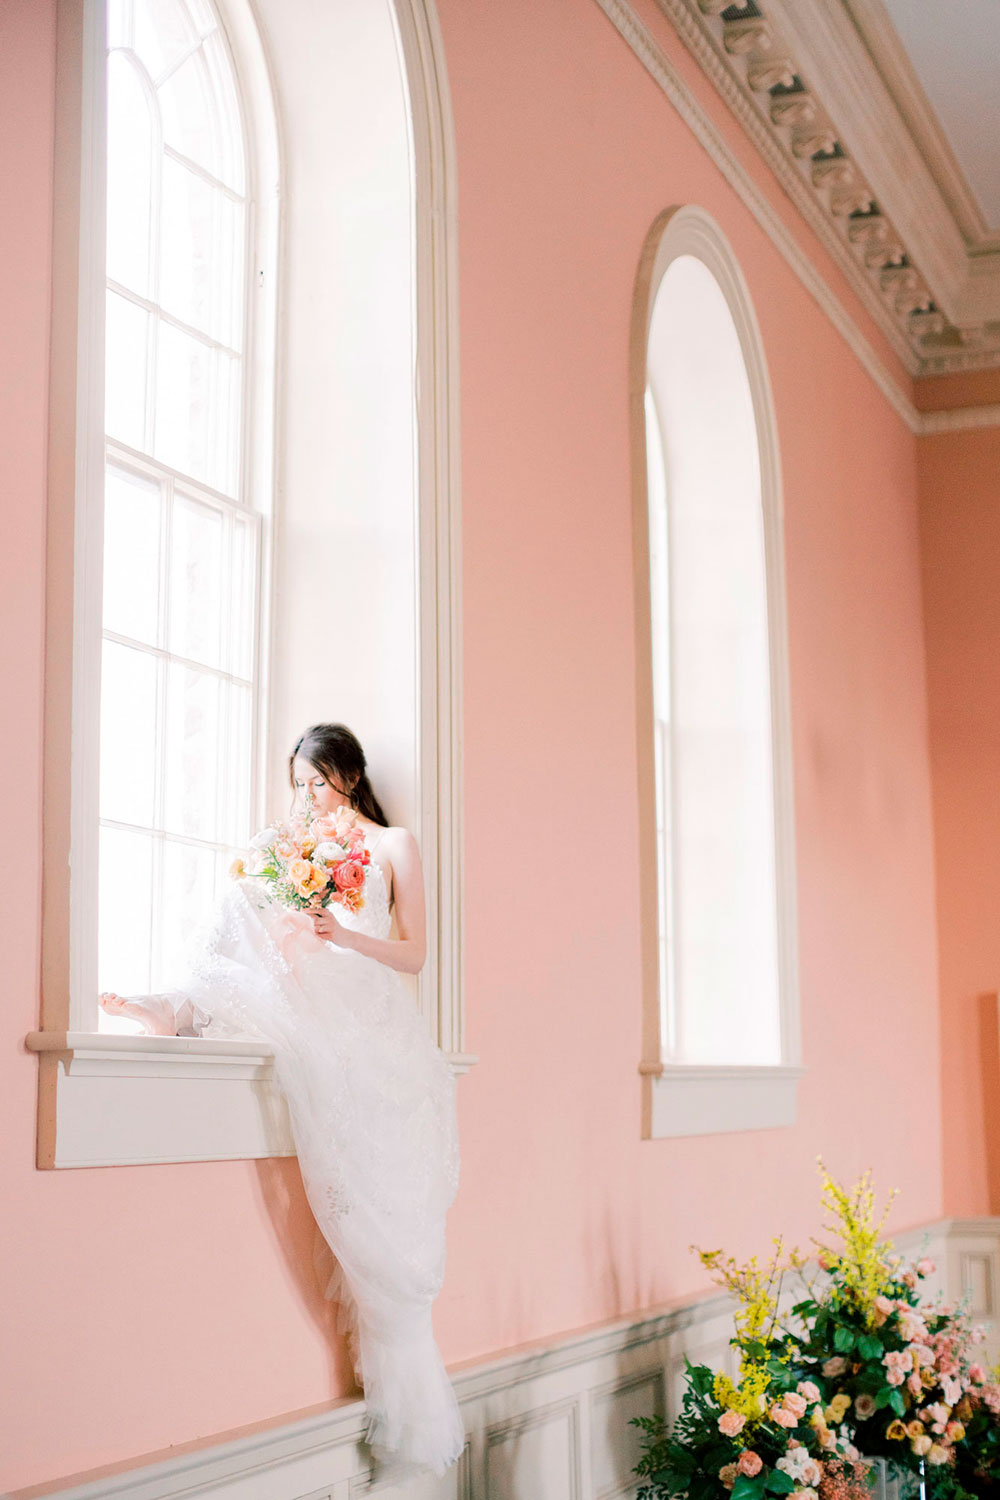 Niagara-on-the-Lake-Courthouse-Vineyard-Bride-Editorial-photo-by-Jessica-Imrie-Photography-047.jpg